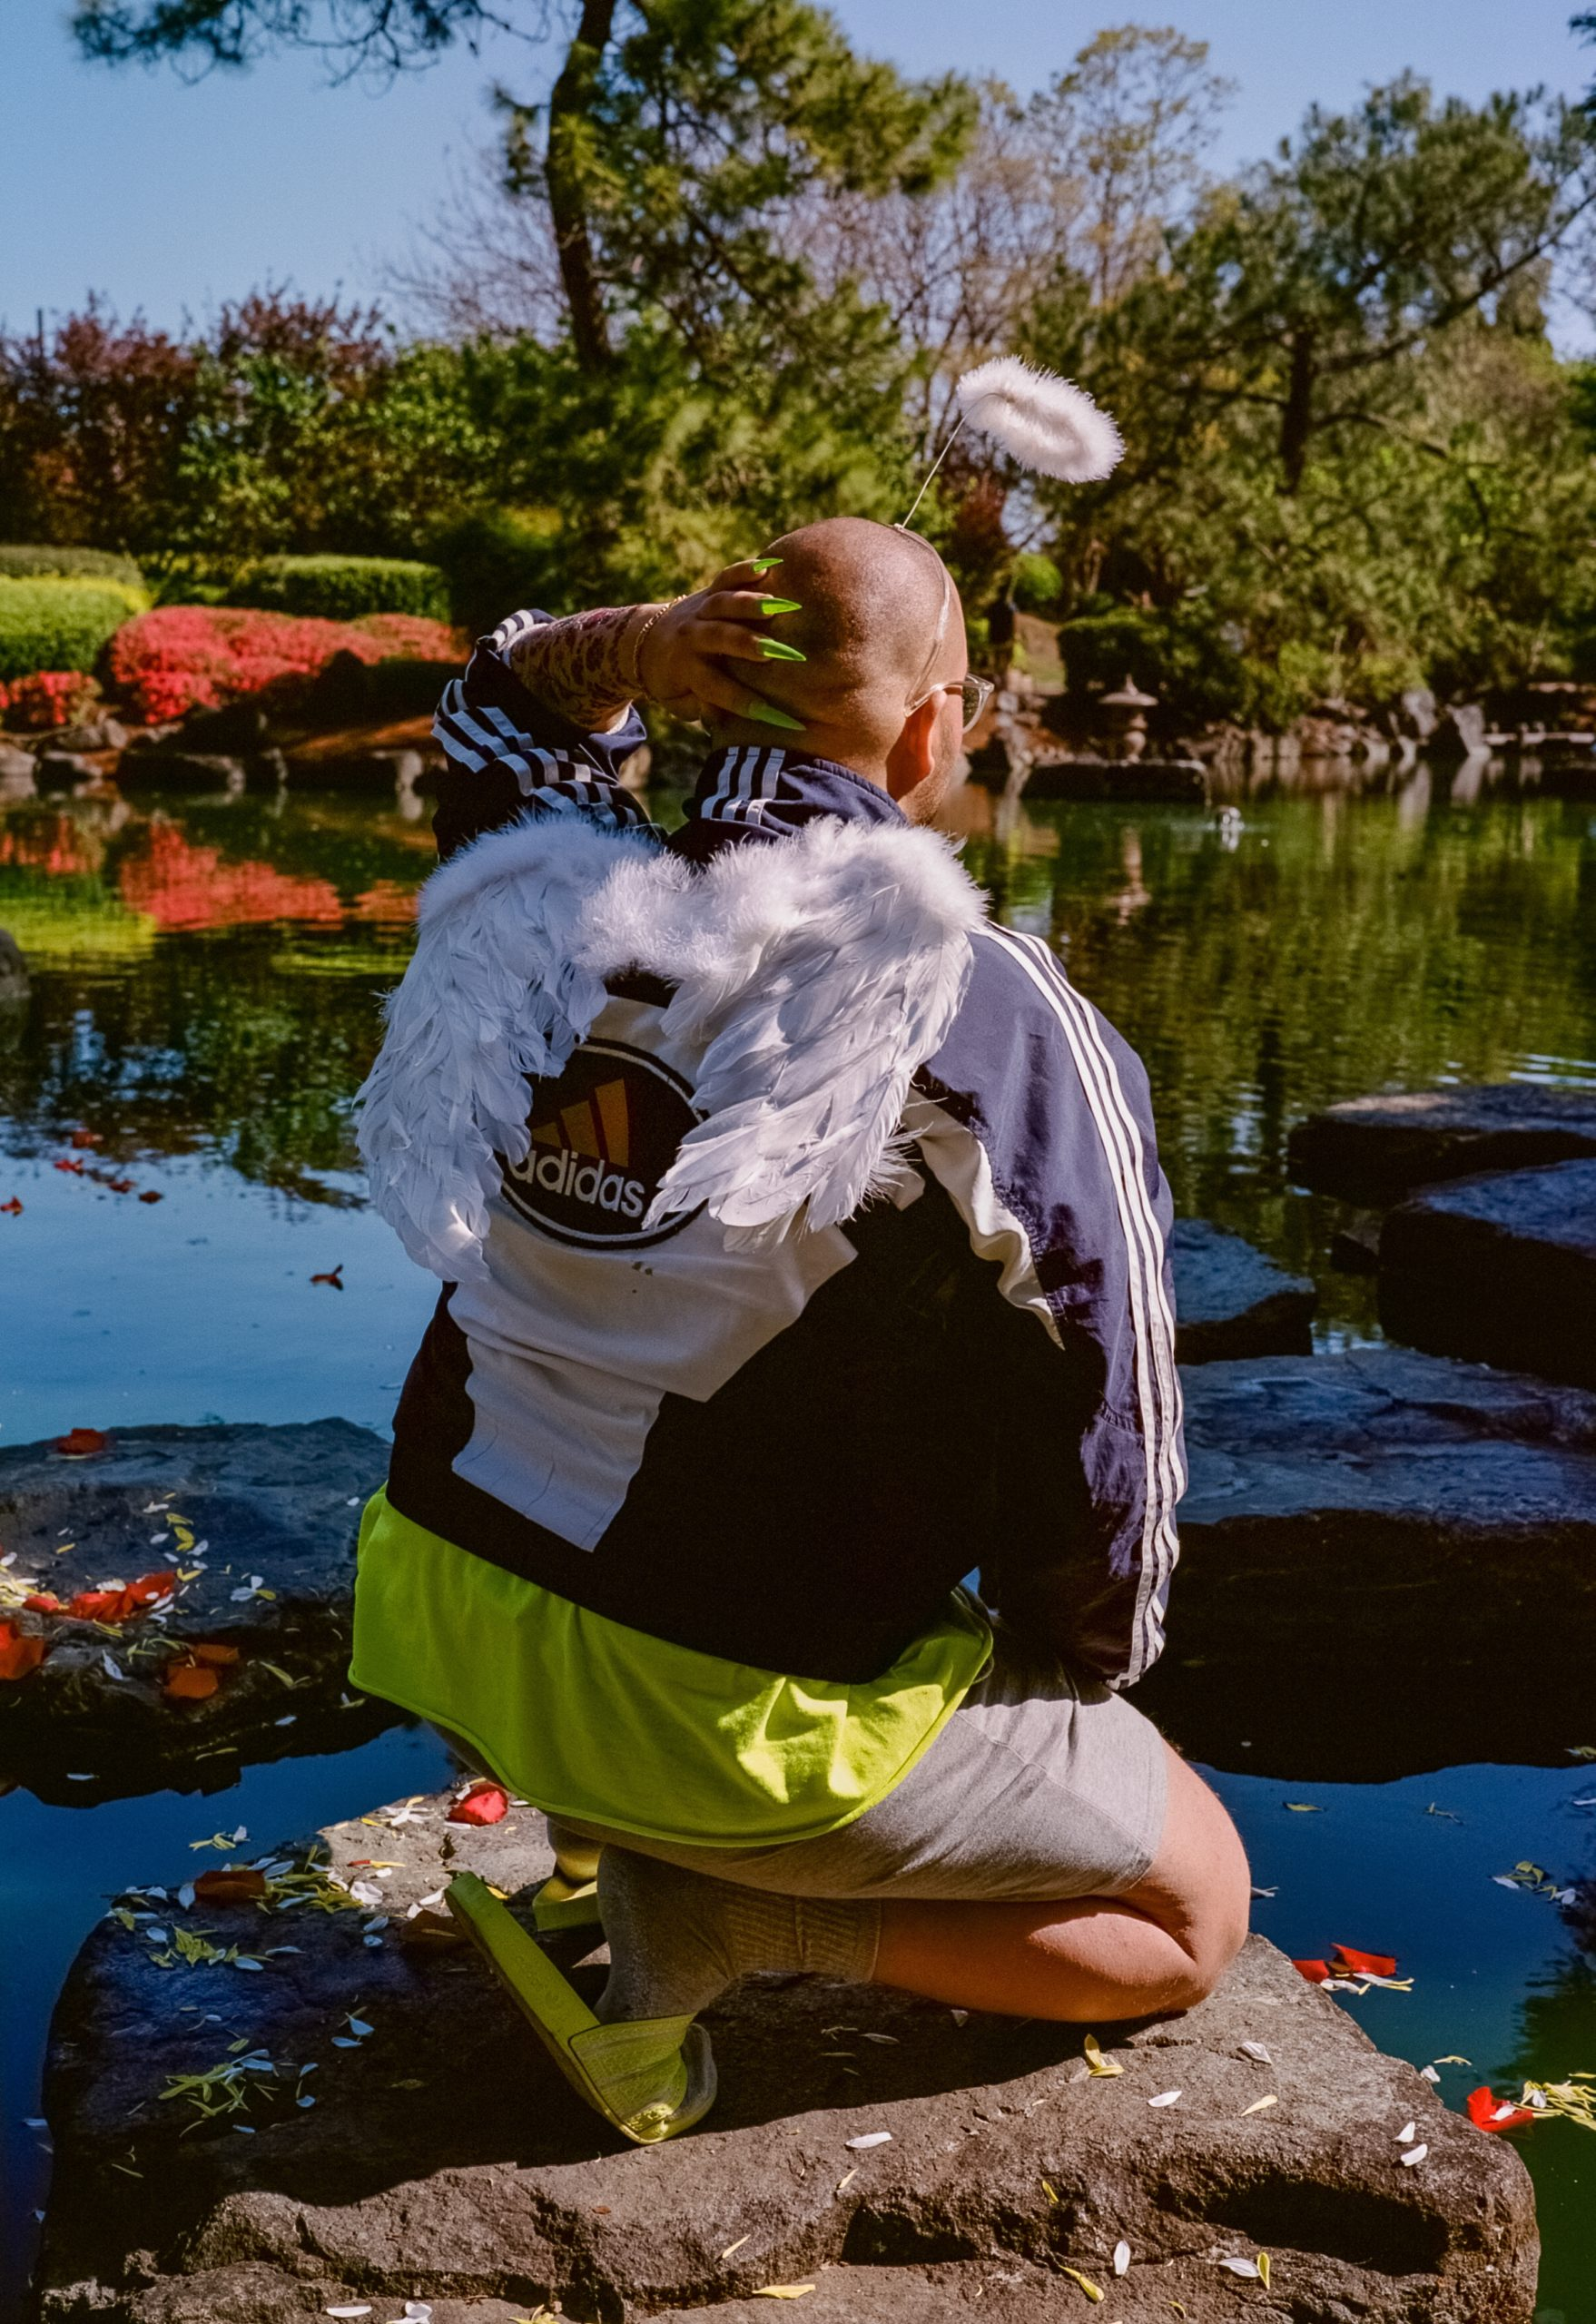 A figure is squatting on a stone with their back to the camera amidst the pond of the Auburn Botanic Japanese Gardens in this photographic portrait. Red, yellow and white flower petals line the pond and the stone. The colorful flora of the gardens can be seen in the background. The non-binary figure is wearing bright green acrylic nail clip-ons, a bright green t-shirt, bright green slides, and a navy blue Adidas wind-breaker. Feathered wings adorn their back, a toy-store halo is floating above their head, and fake tattoos are lined down their fore-arm. Their hand is raised and resting behind their head.